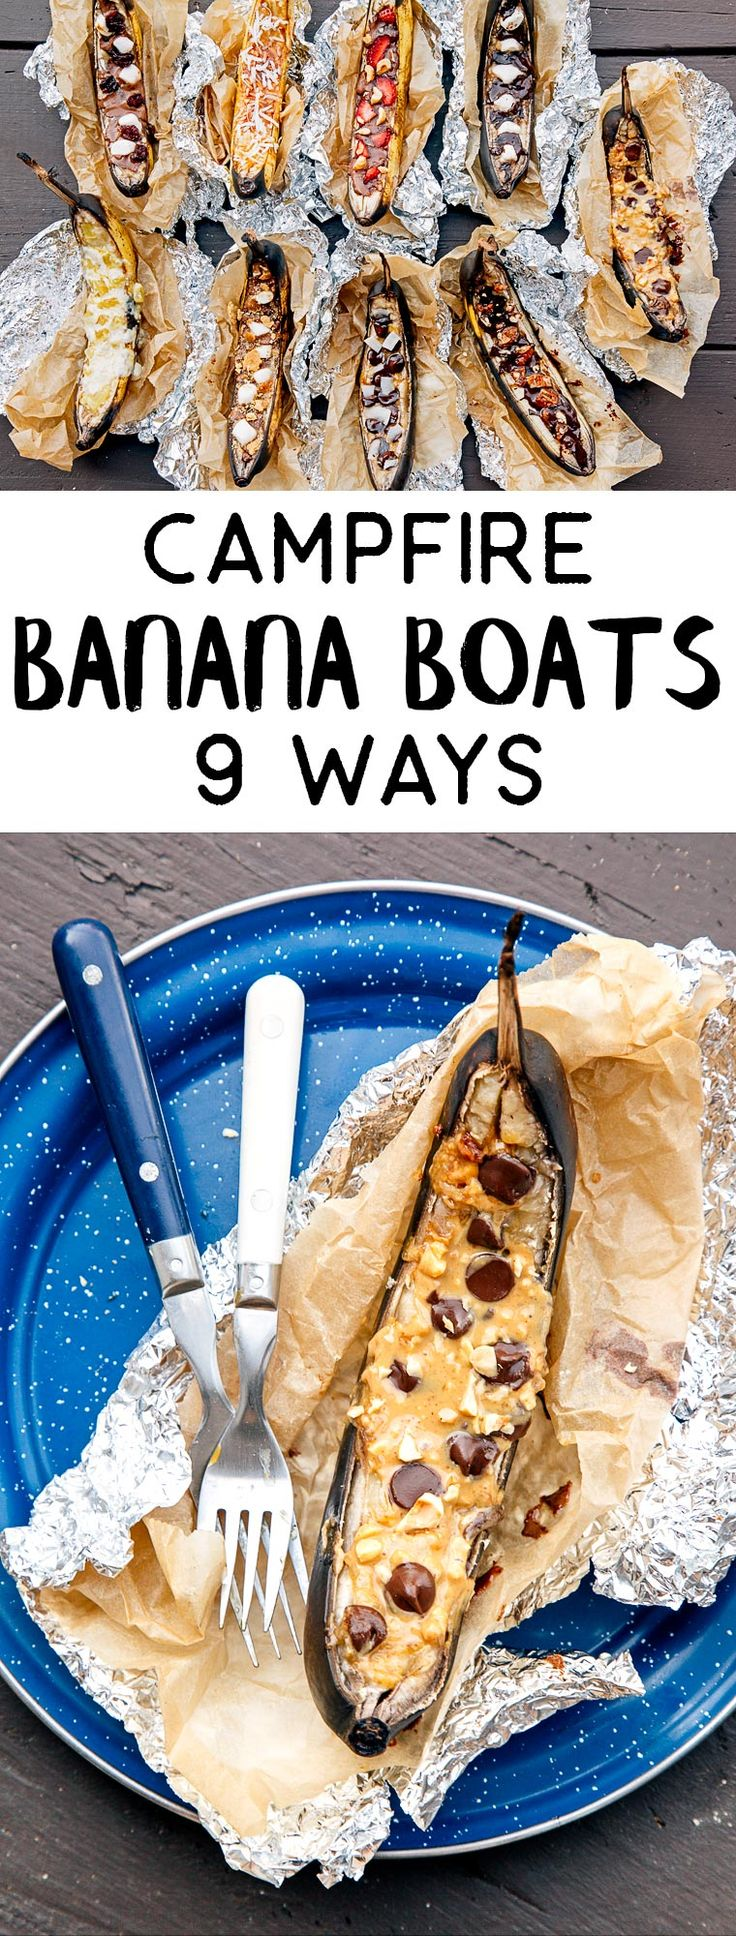 Learn how to make banana boats - a classic camping dessert cooked over the campfire! This is a great idea when camping with a crowd or for kids. We share 9 different recipes so there is something that everyone will enjoy!